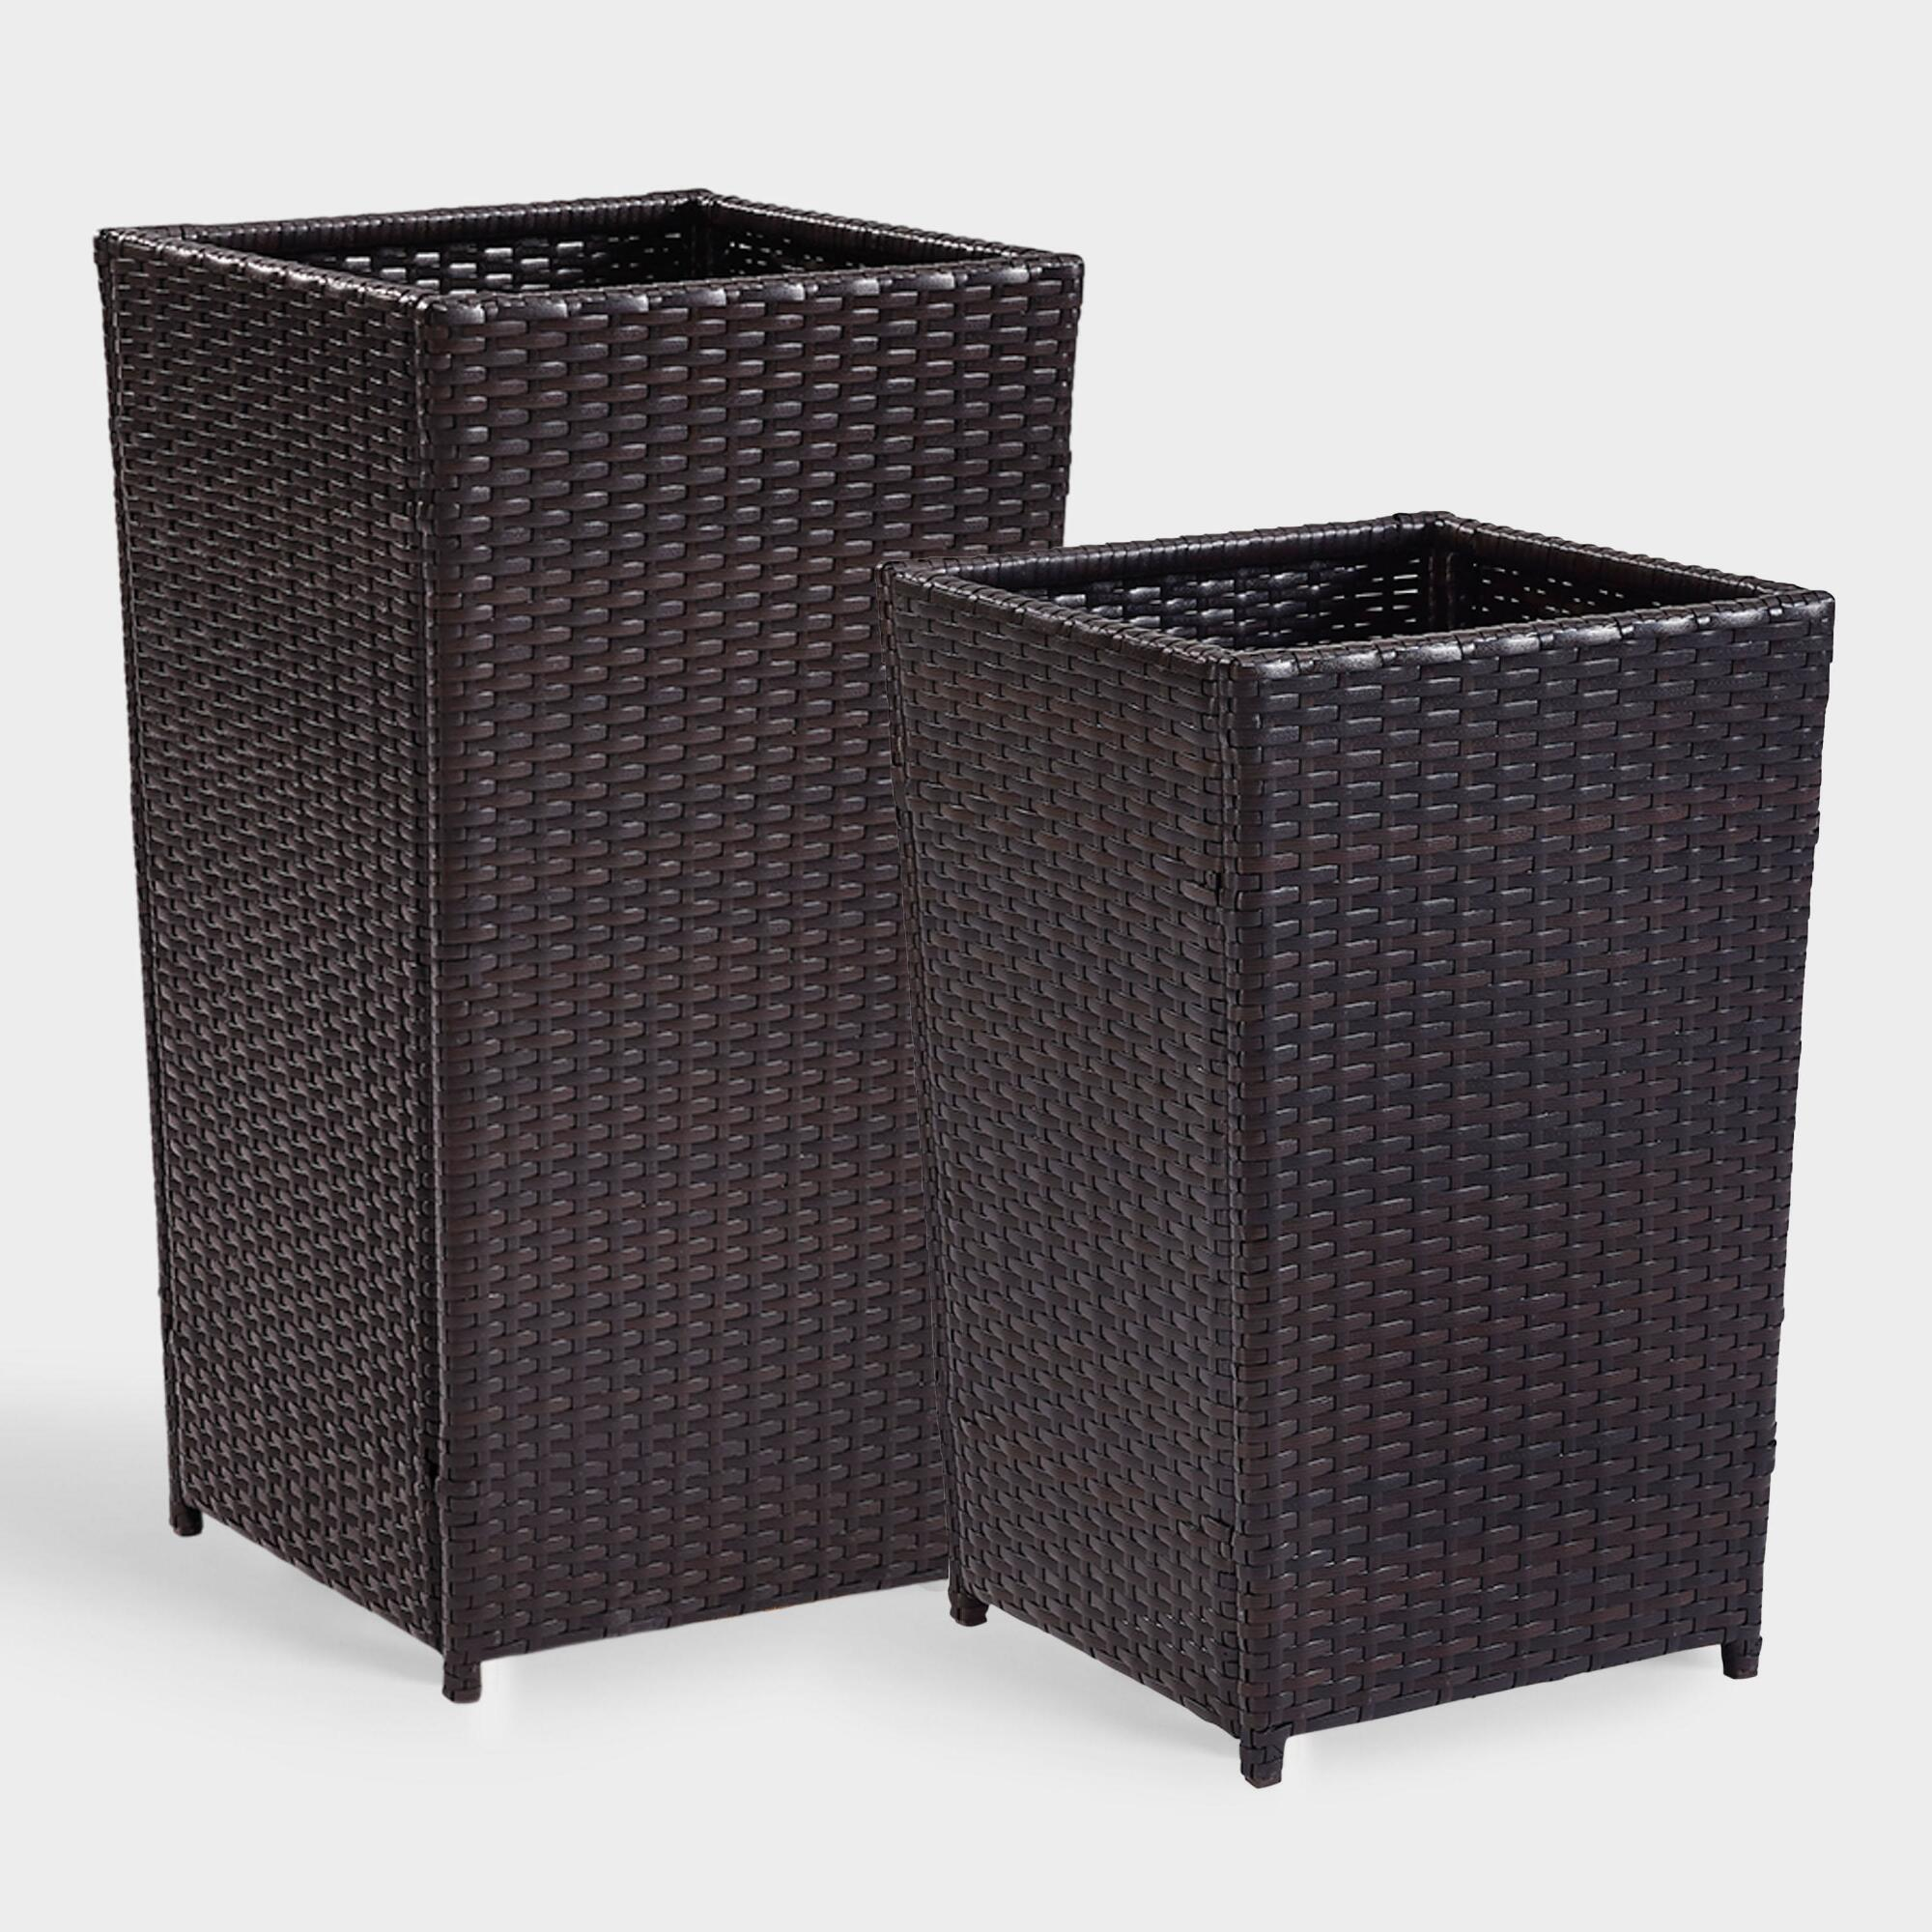 Espresso All Weather Pinamar Outdoor Patio Planter Collection by World Market